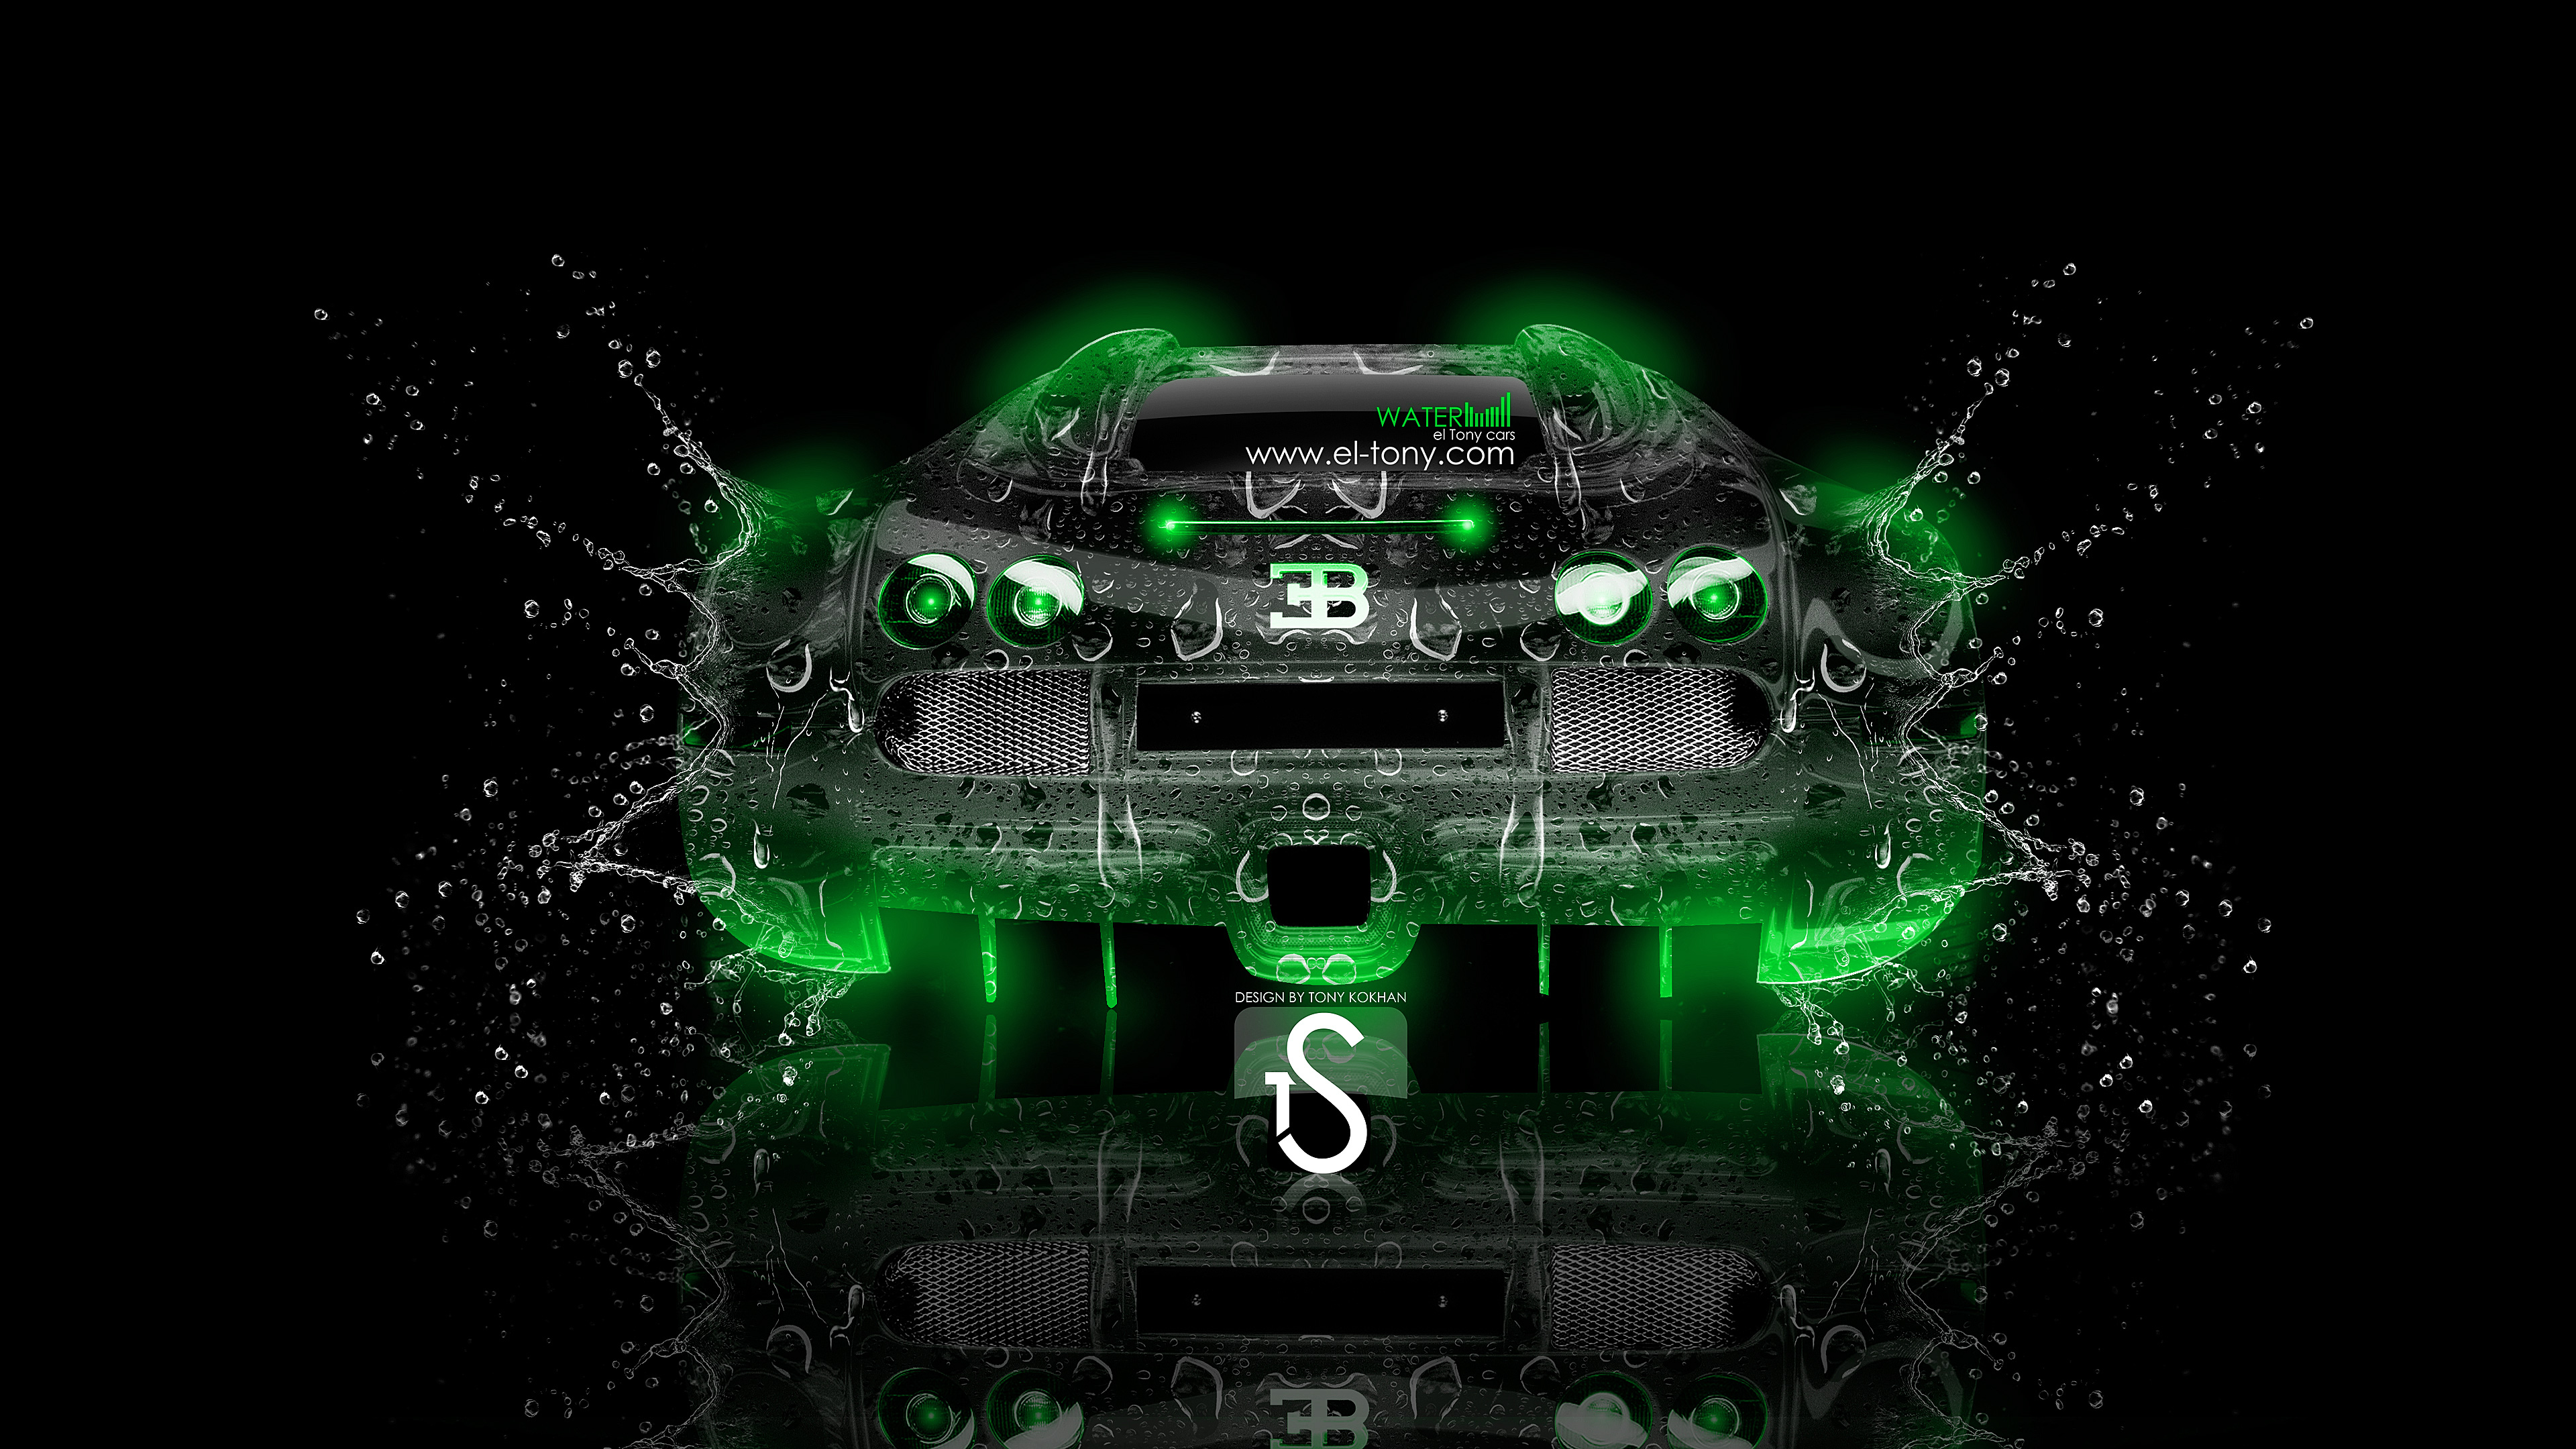 Superieur ... Bugatti Veyron Water Car 2013 Back Green Neon  ...